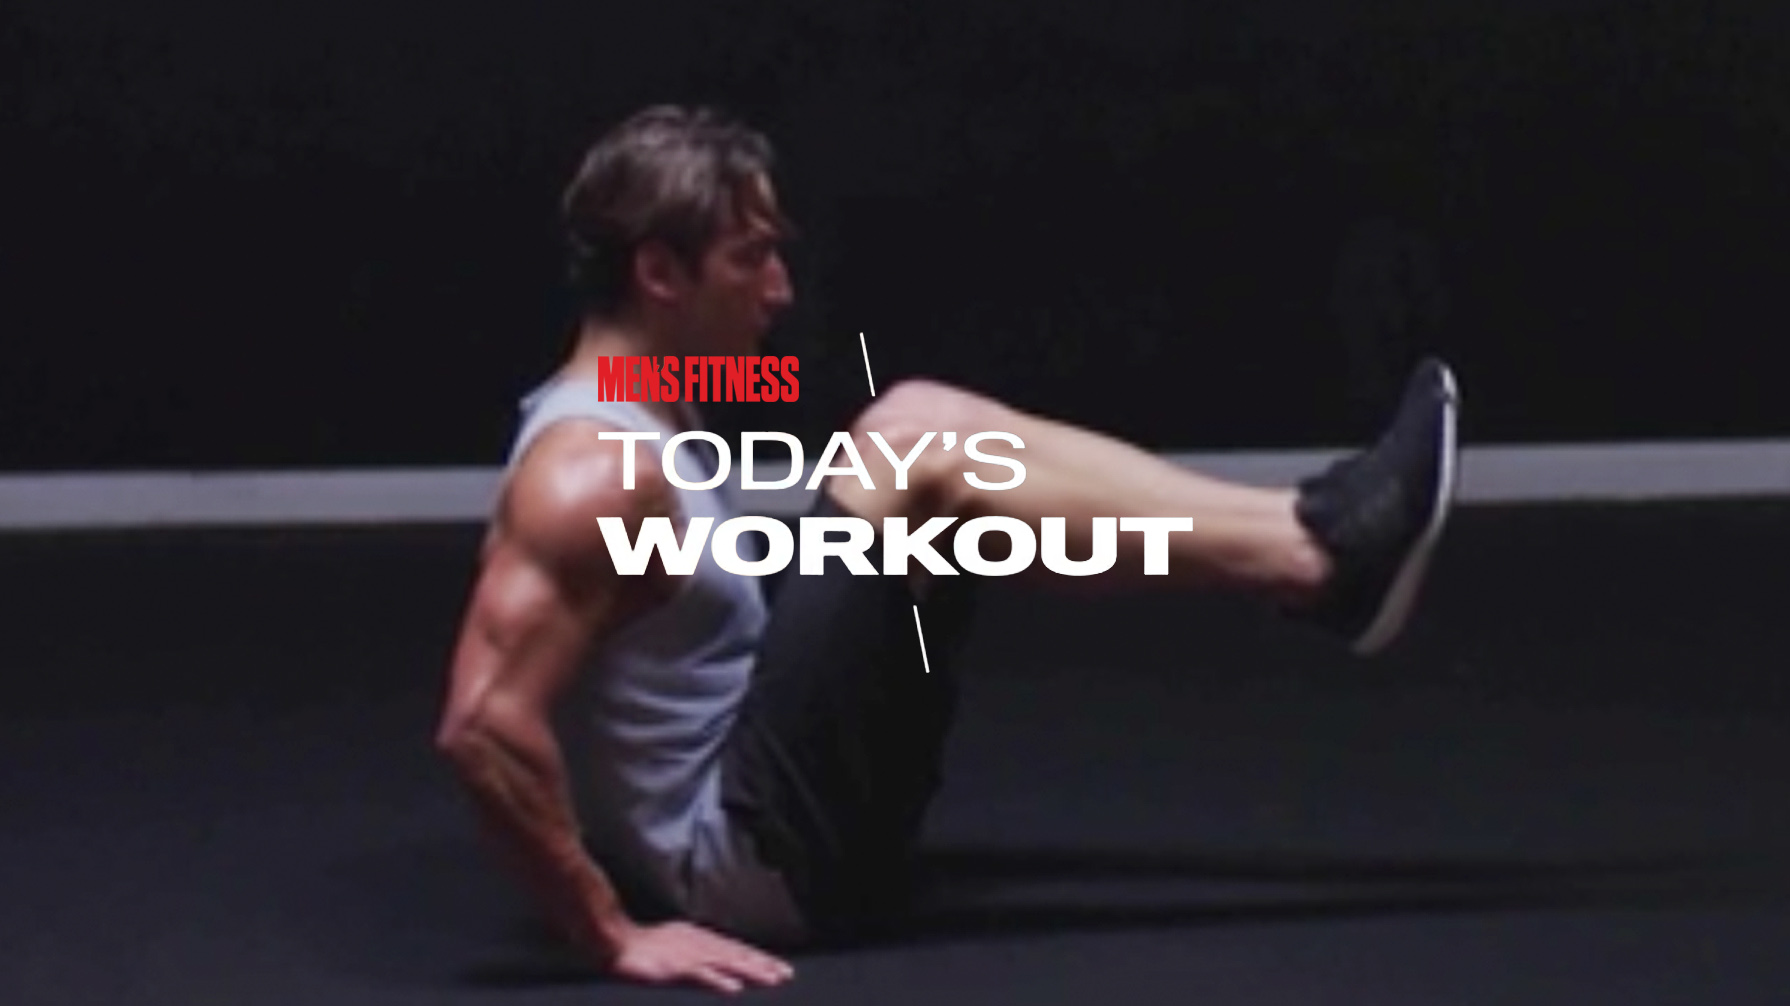 Today's Workout 21: Strengthen your core, build out your chest